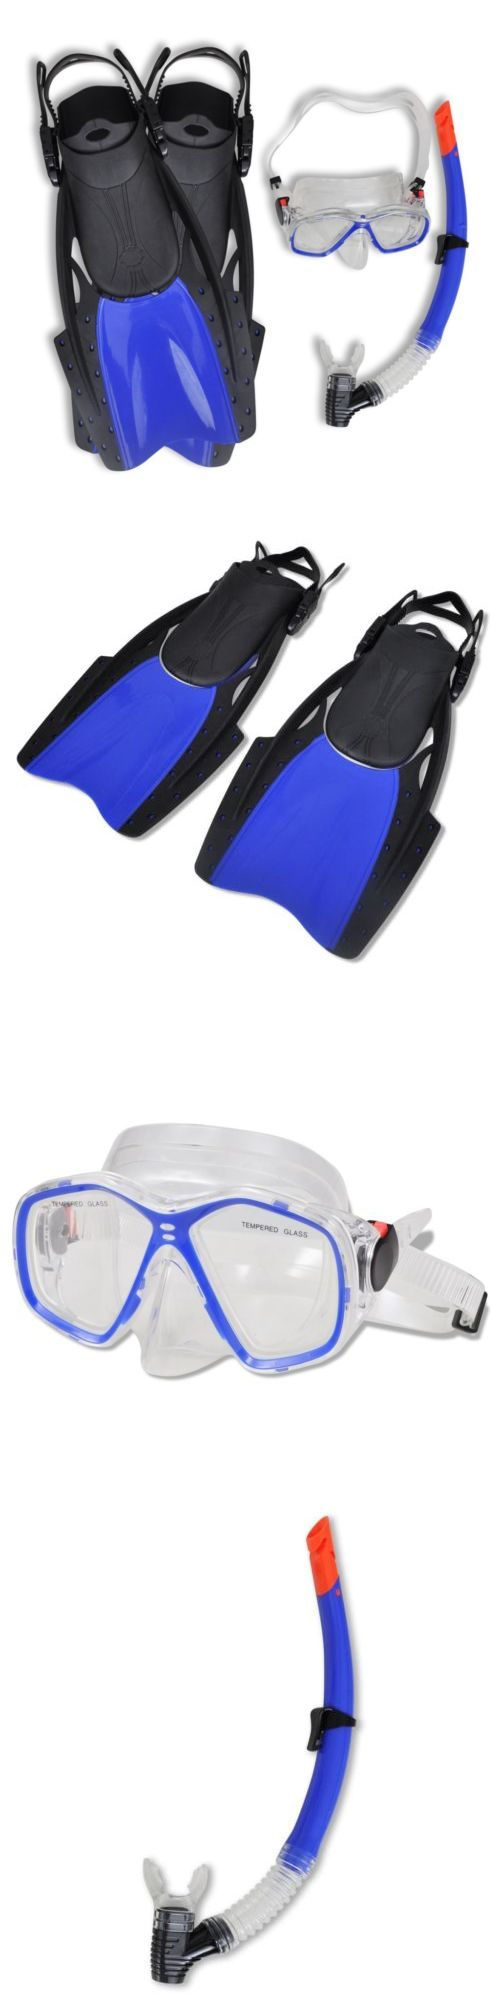 Snorkels and Sets 71162: Snorkeling Mask Fins Dry Snorkel Diving Set Gear Bag Scuba Kit Adult Adjustable BUY IT NOW ONLY: $30.79